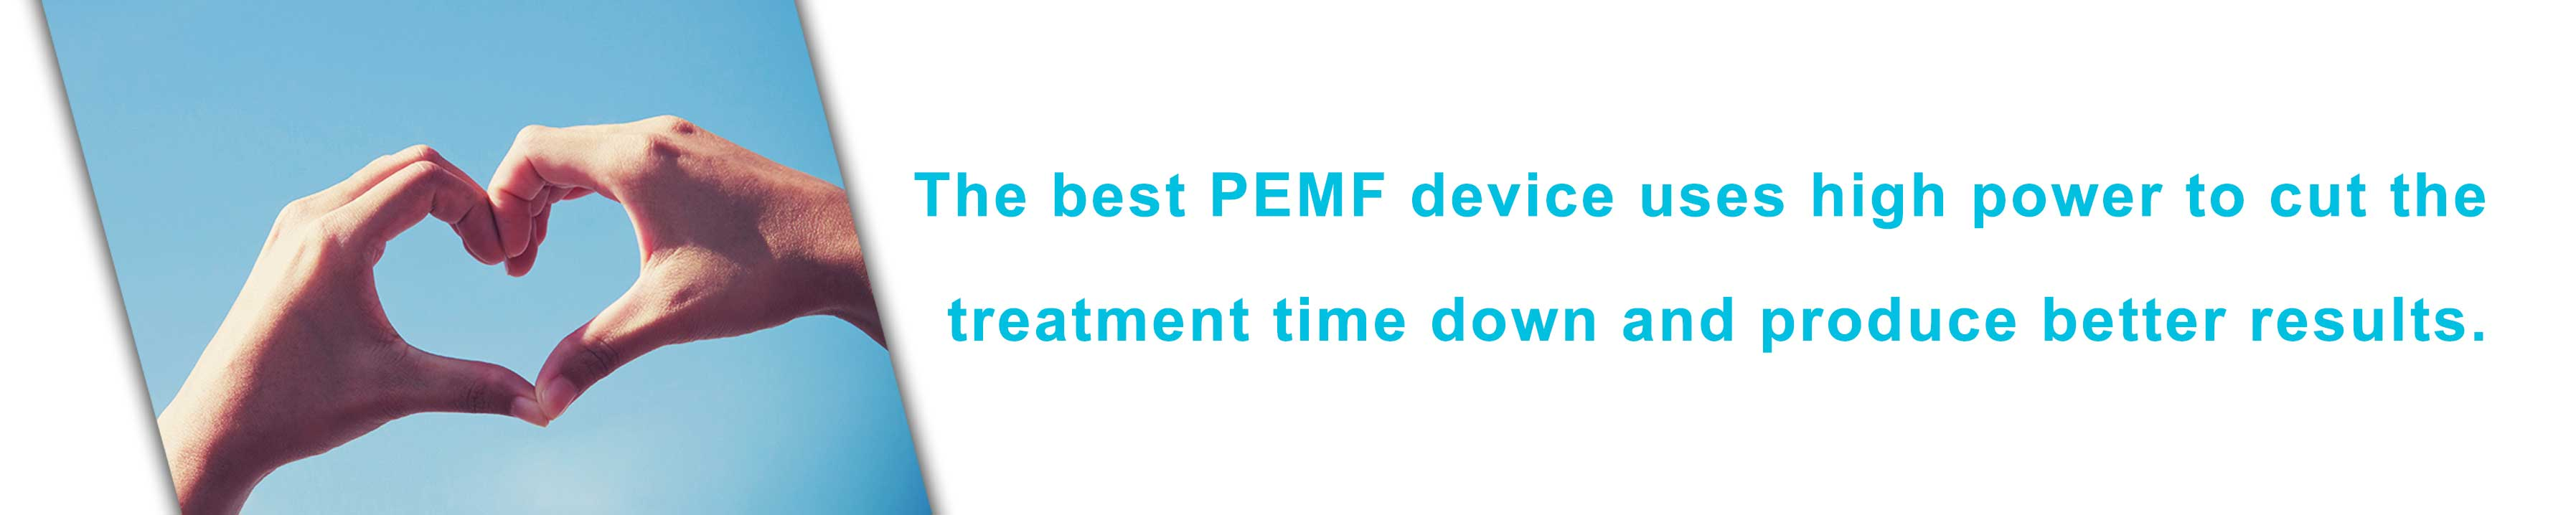 Magna Wave - Best PEMF Devices High Power Cuts The Treatment Time